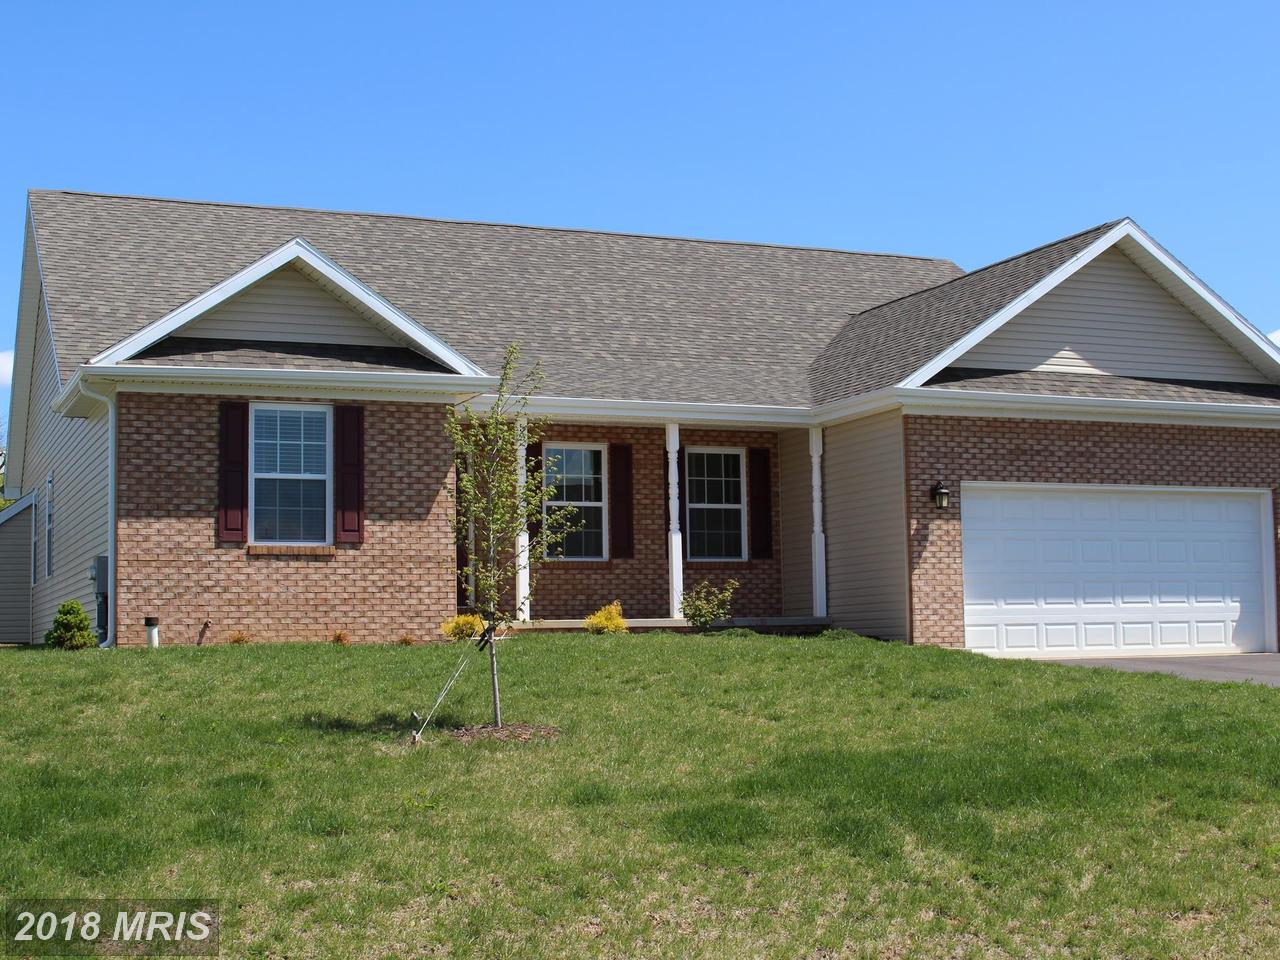 Homes for sale in the Stoney Ridge subdivision | inwood, WV Real ...